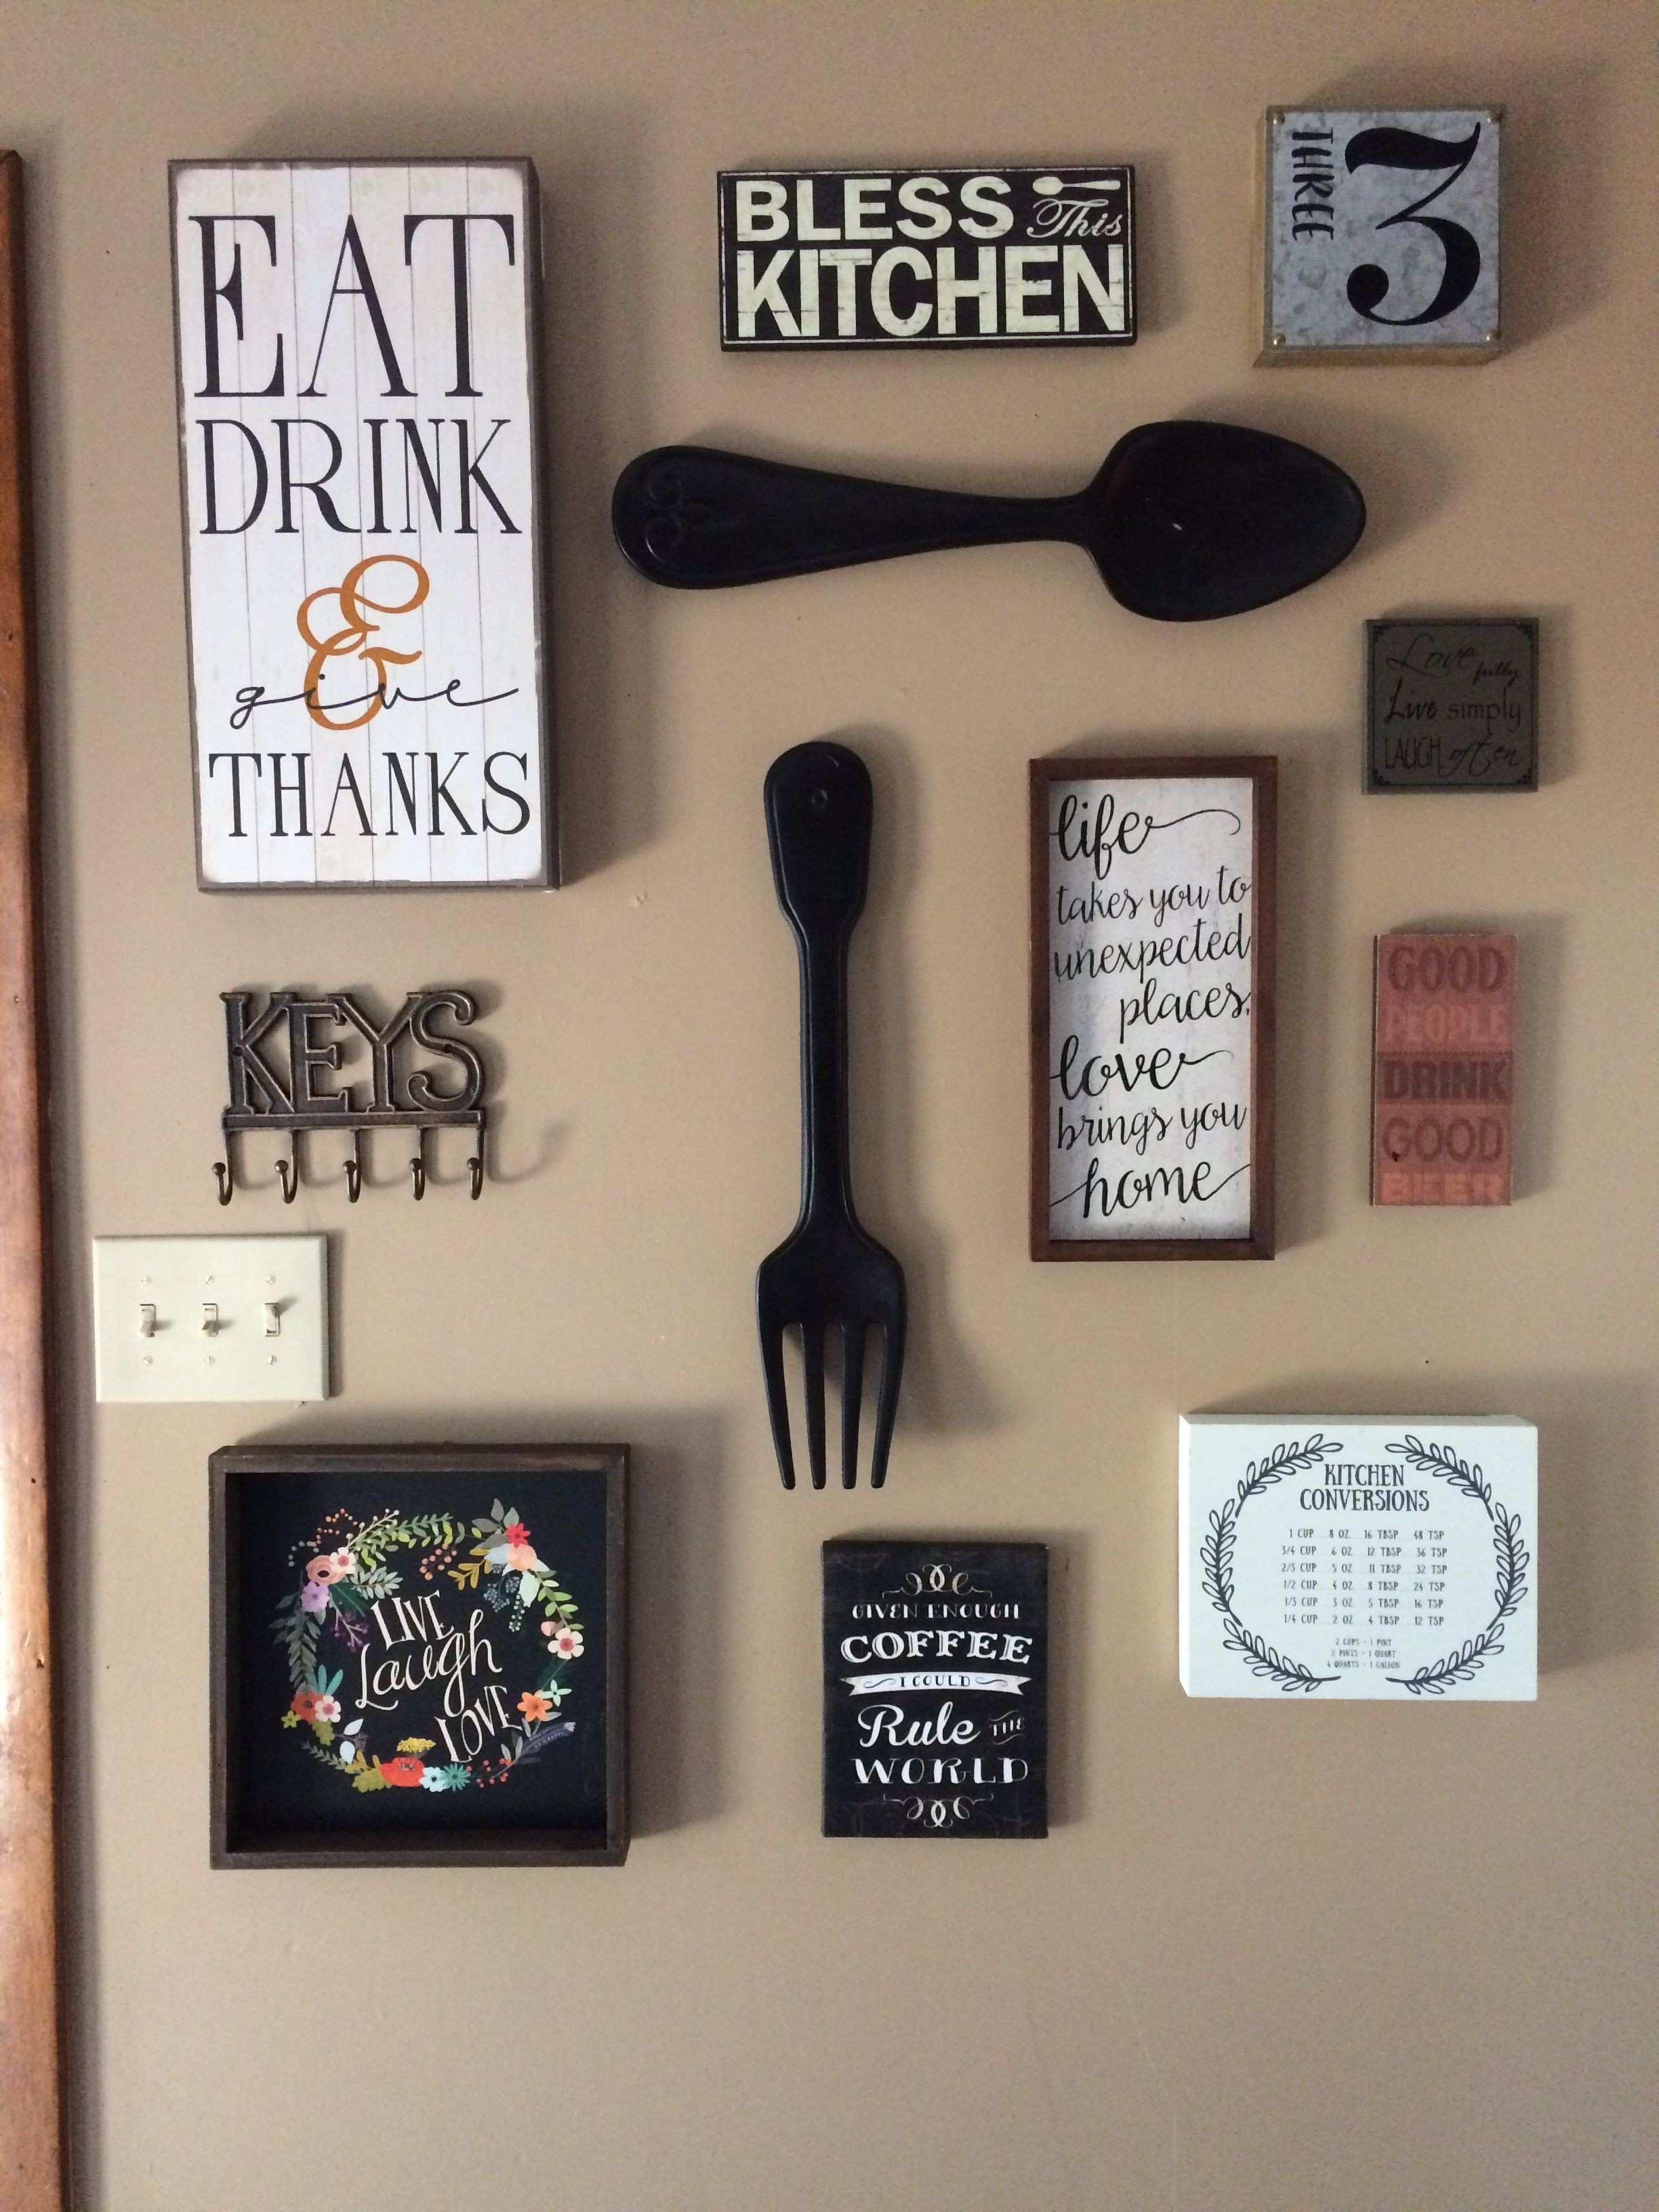 Over the Door Wall Decor Luxury My Kitchen Gallery Wall All Decor From Hobby Lobby and Ross